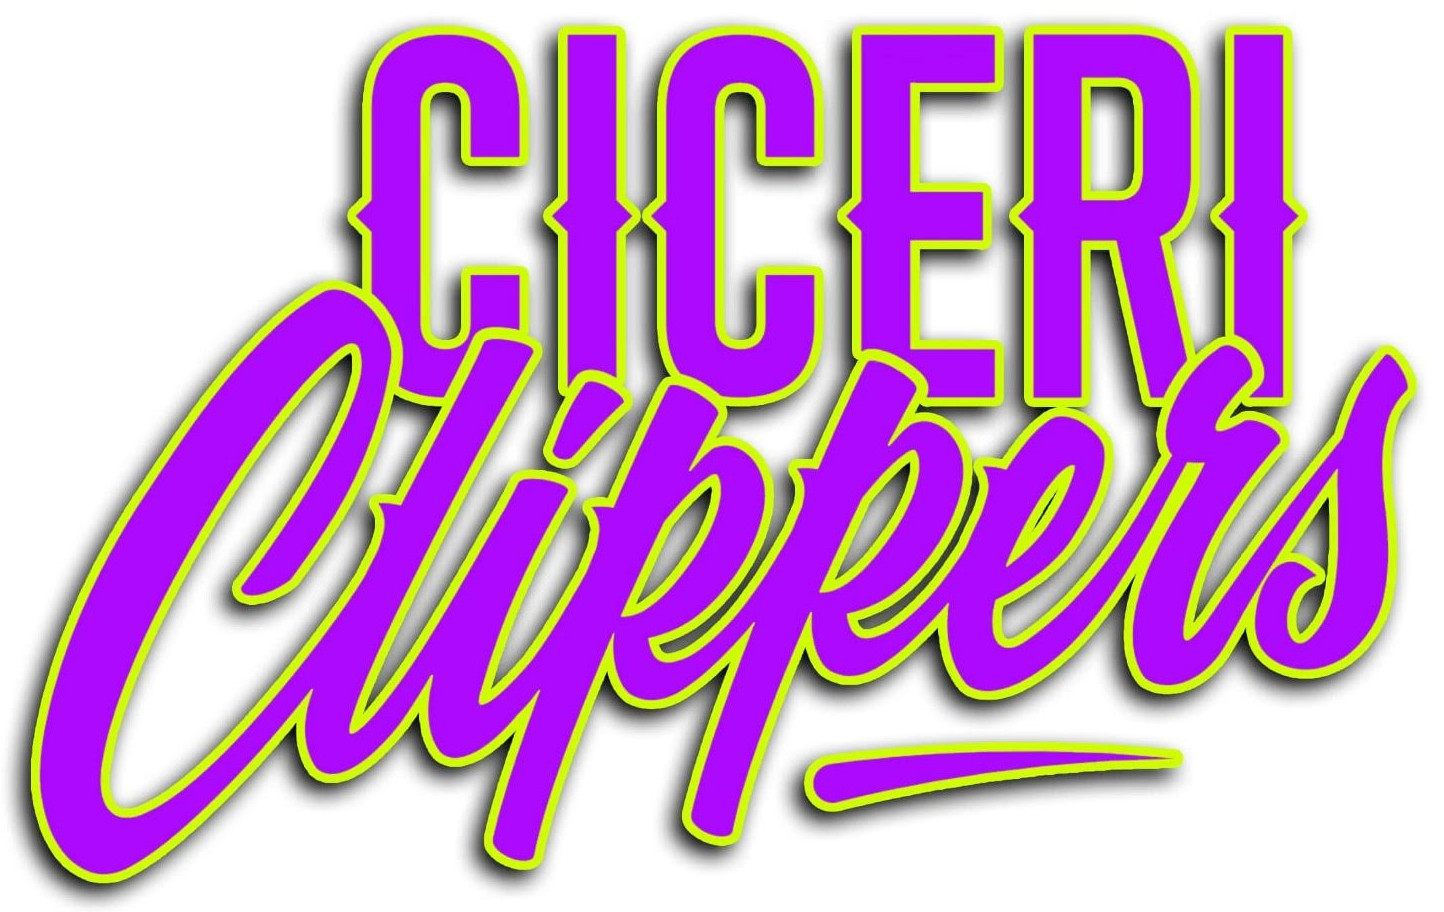 CiceriClippers